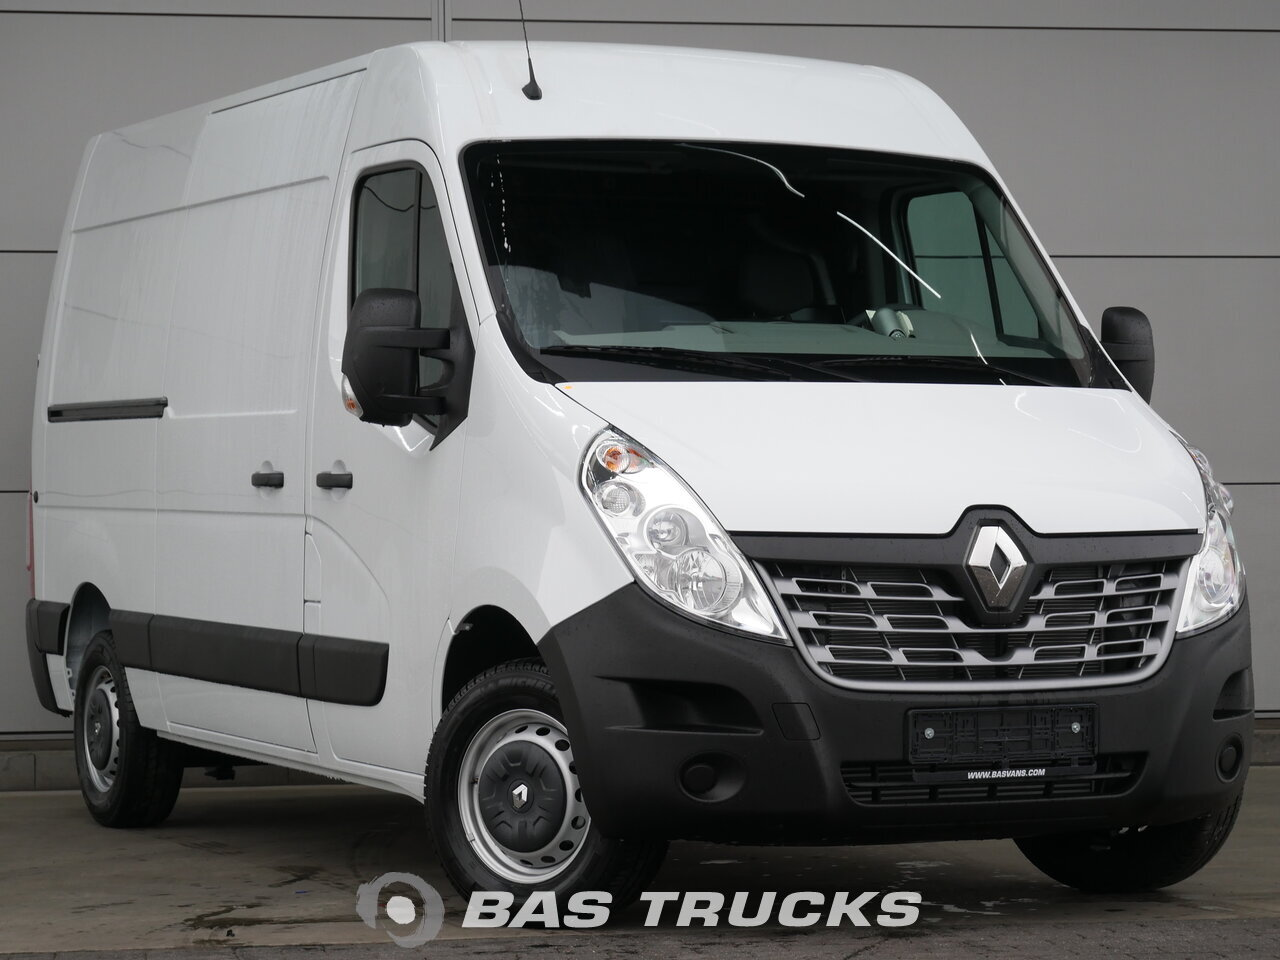 renault master lcv euro 6 21900 bas trucks. Black Bedroom Furniture Sets. Home Design Ideas